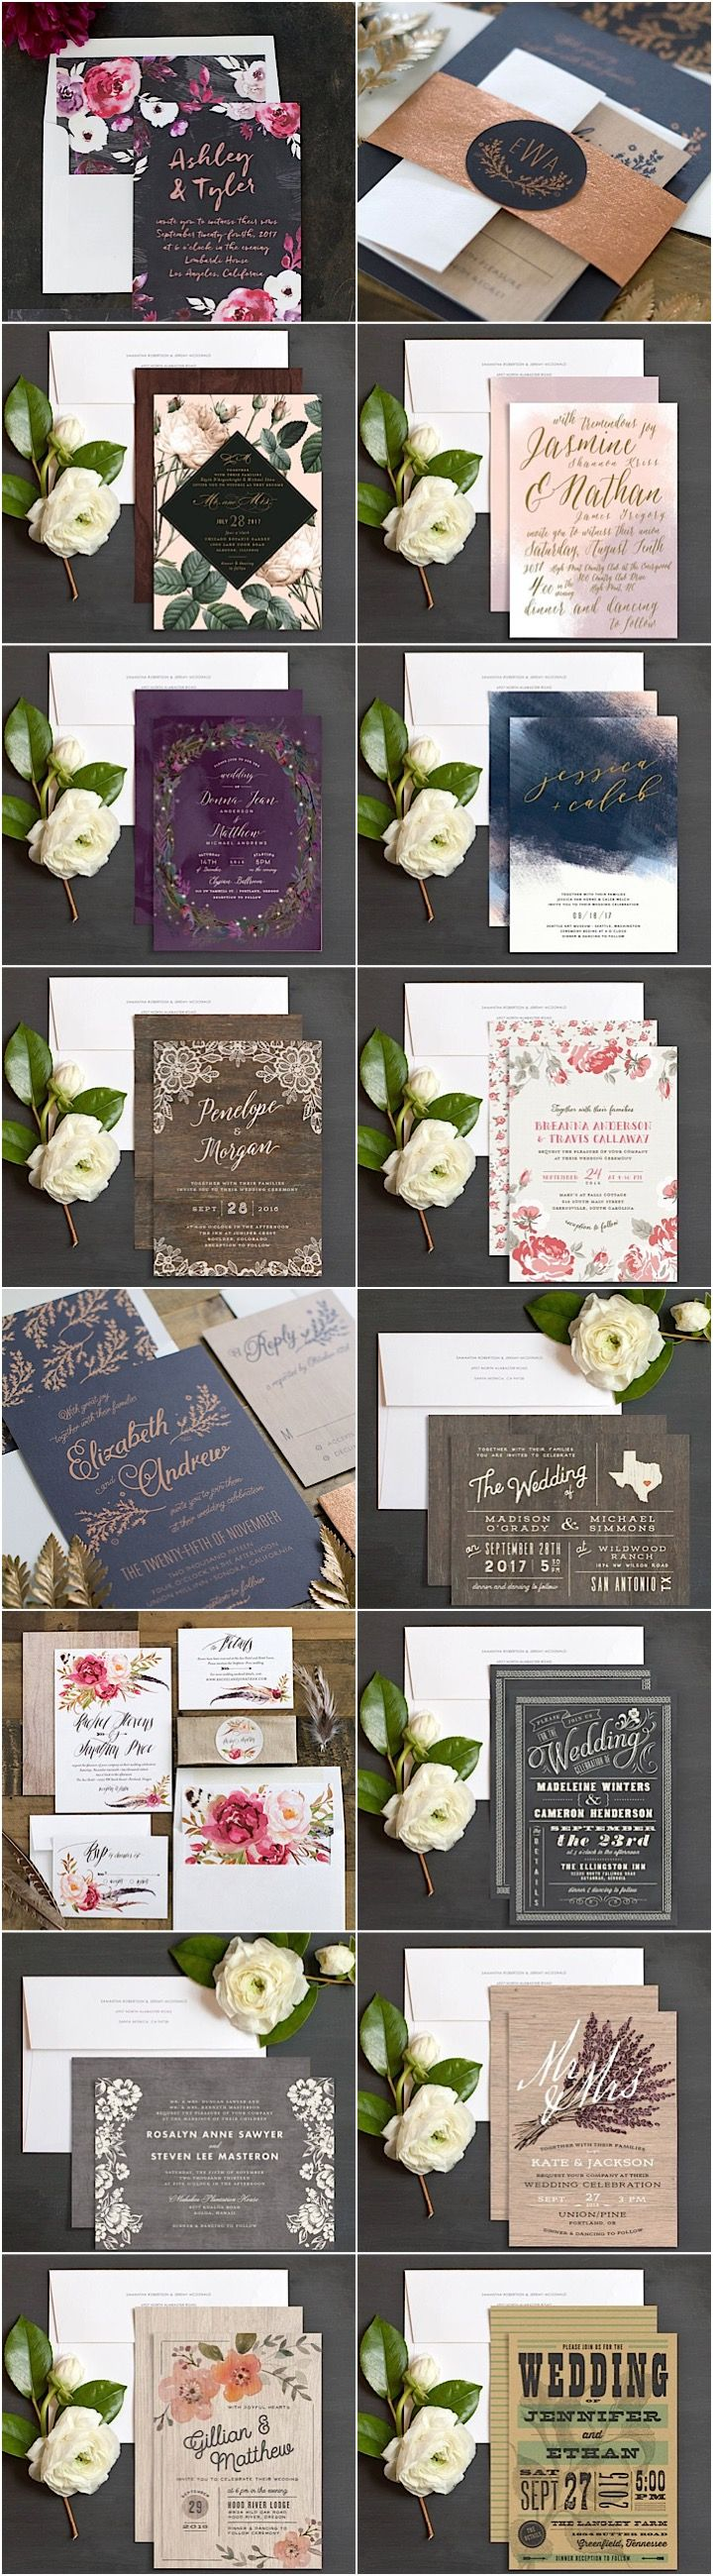 222 best Wedding Invitations images on Pinterest Invitation ideas